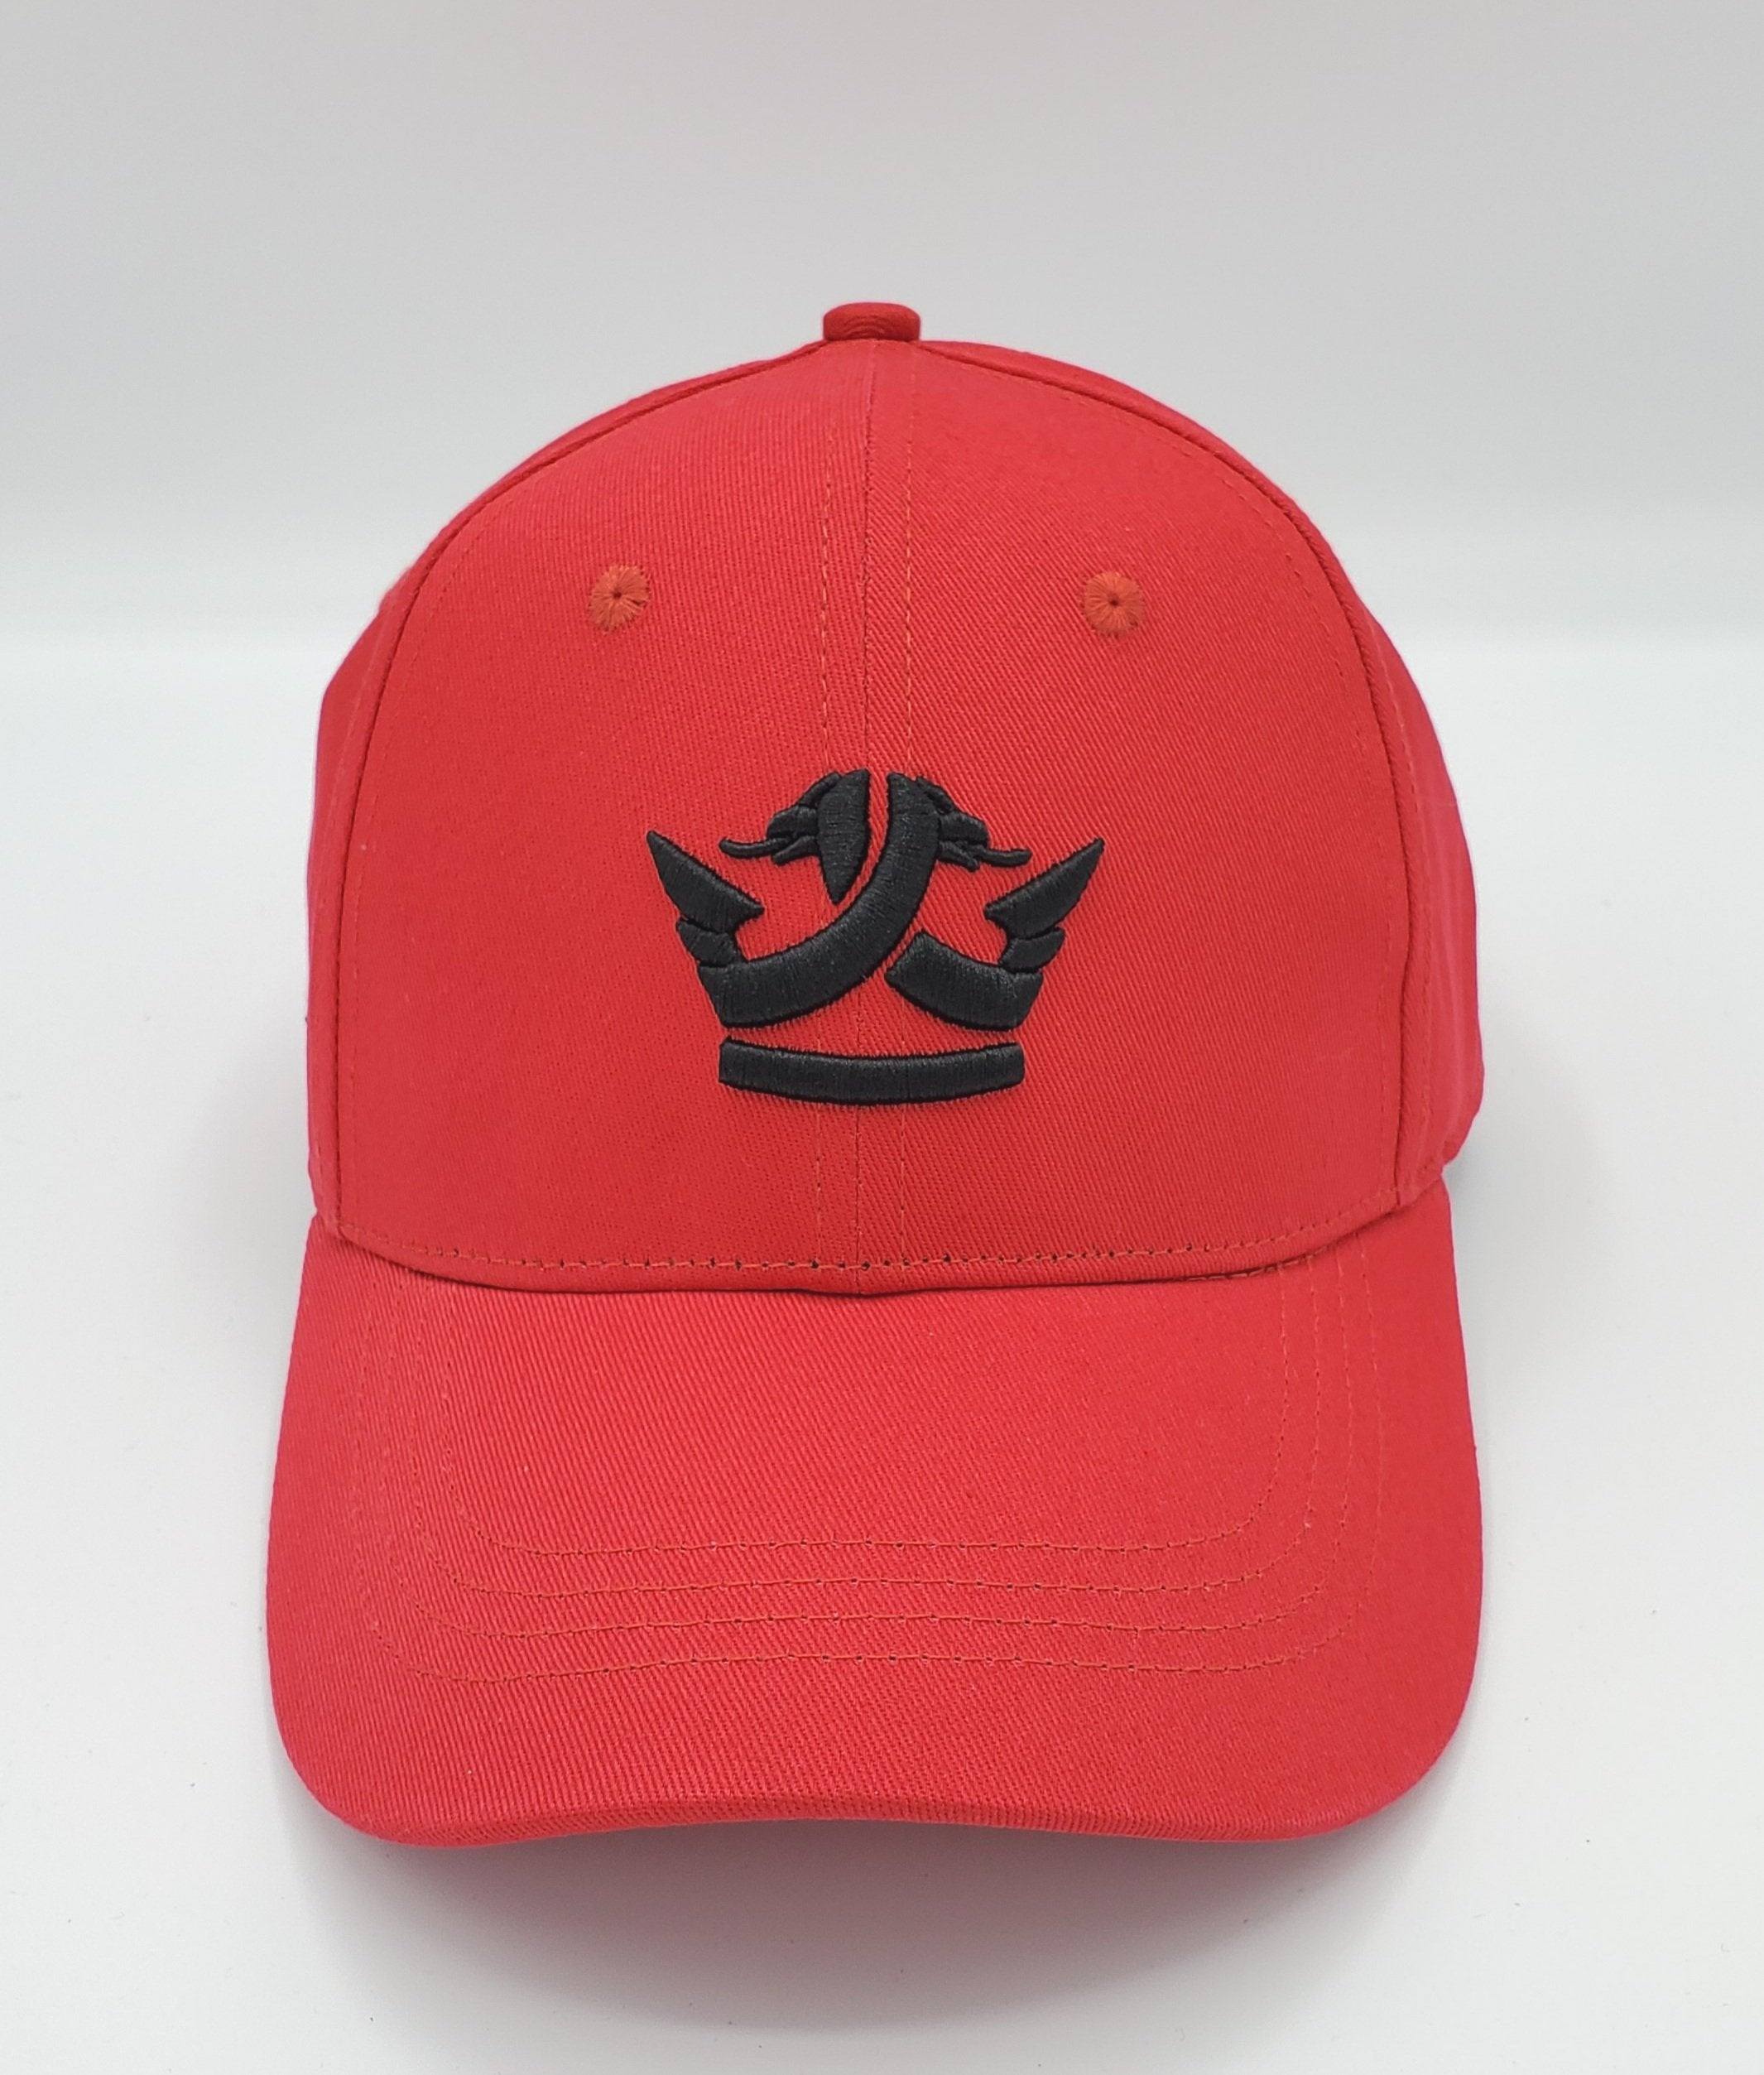 1st Edition Shq1pe Baseball Cap  Red/Black